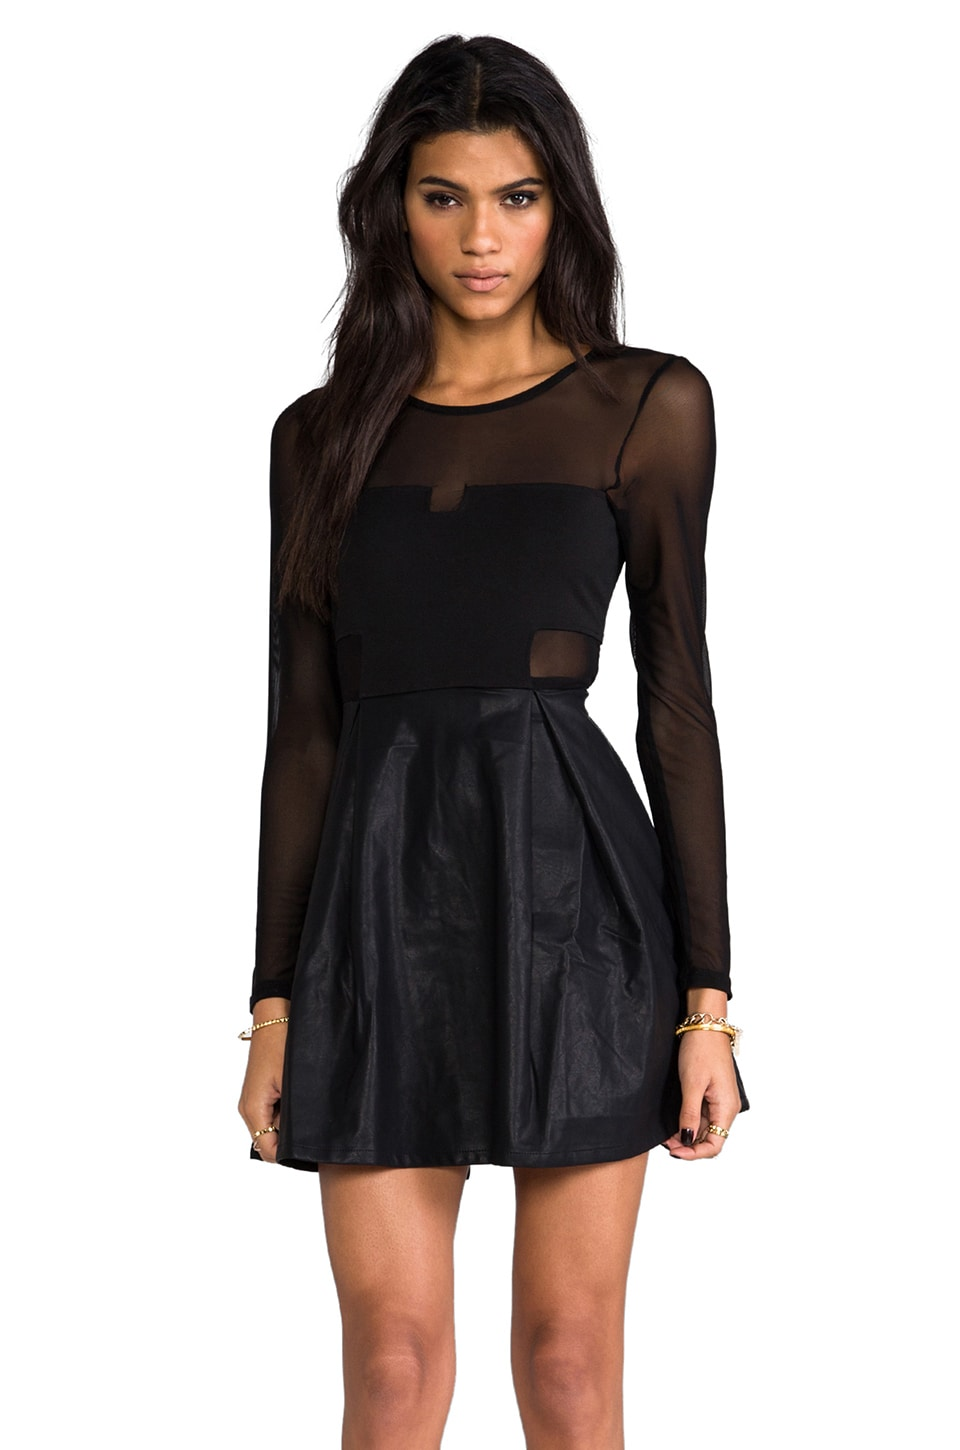 MINKPINK Pump Up the Glam Dress in Black